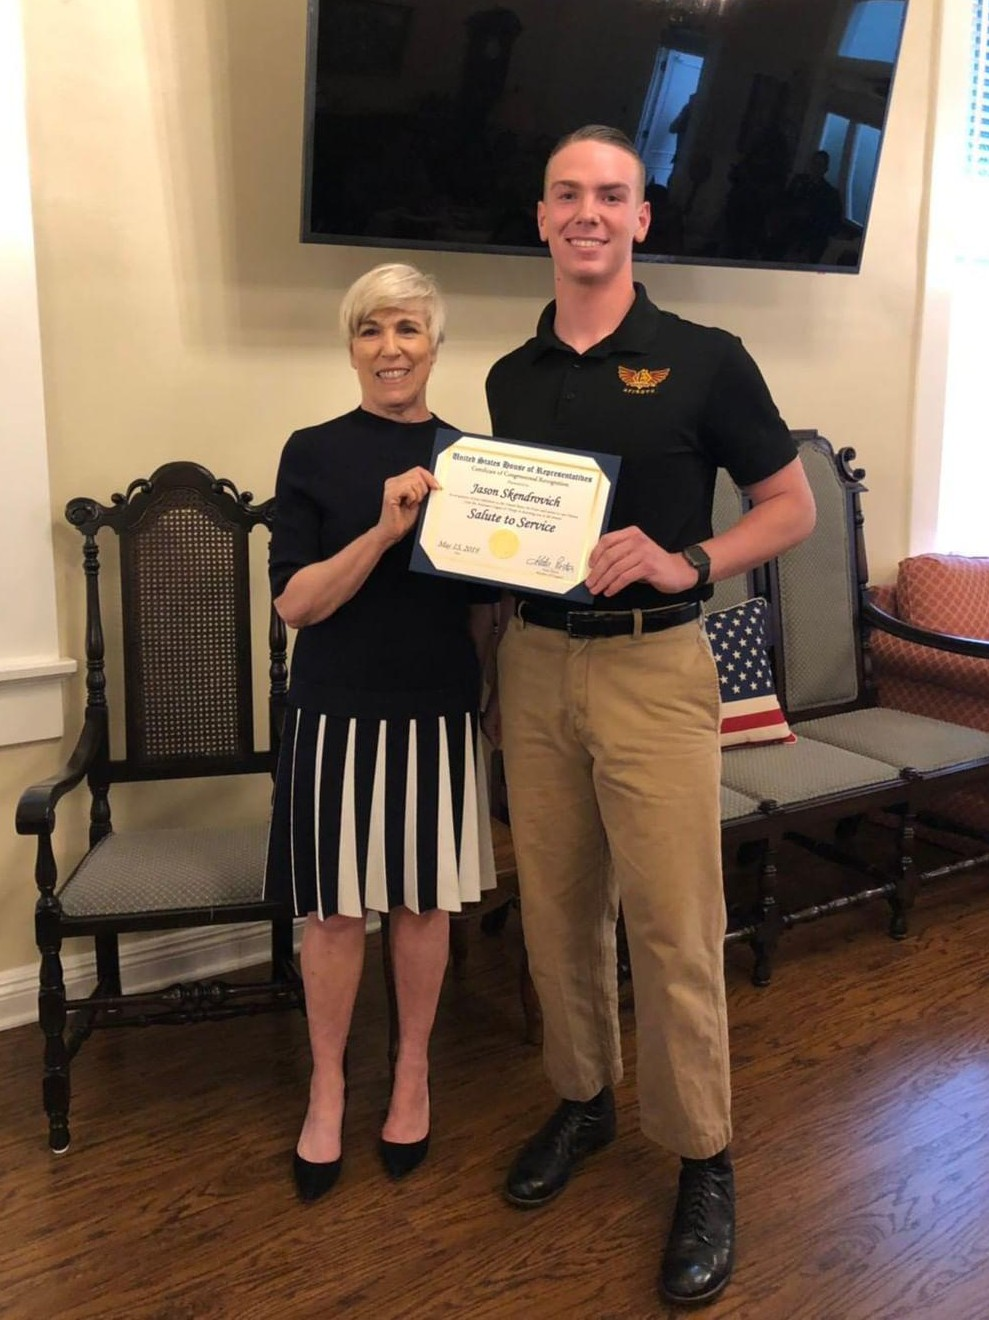 Senior Jason Skendrovich receiving his honorary congressional certificate from the Orange Assistance League at the Salute to Service dinner. The award honors high school enlistees to the military.